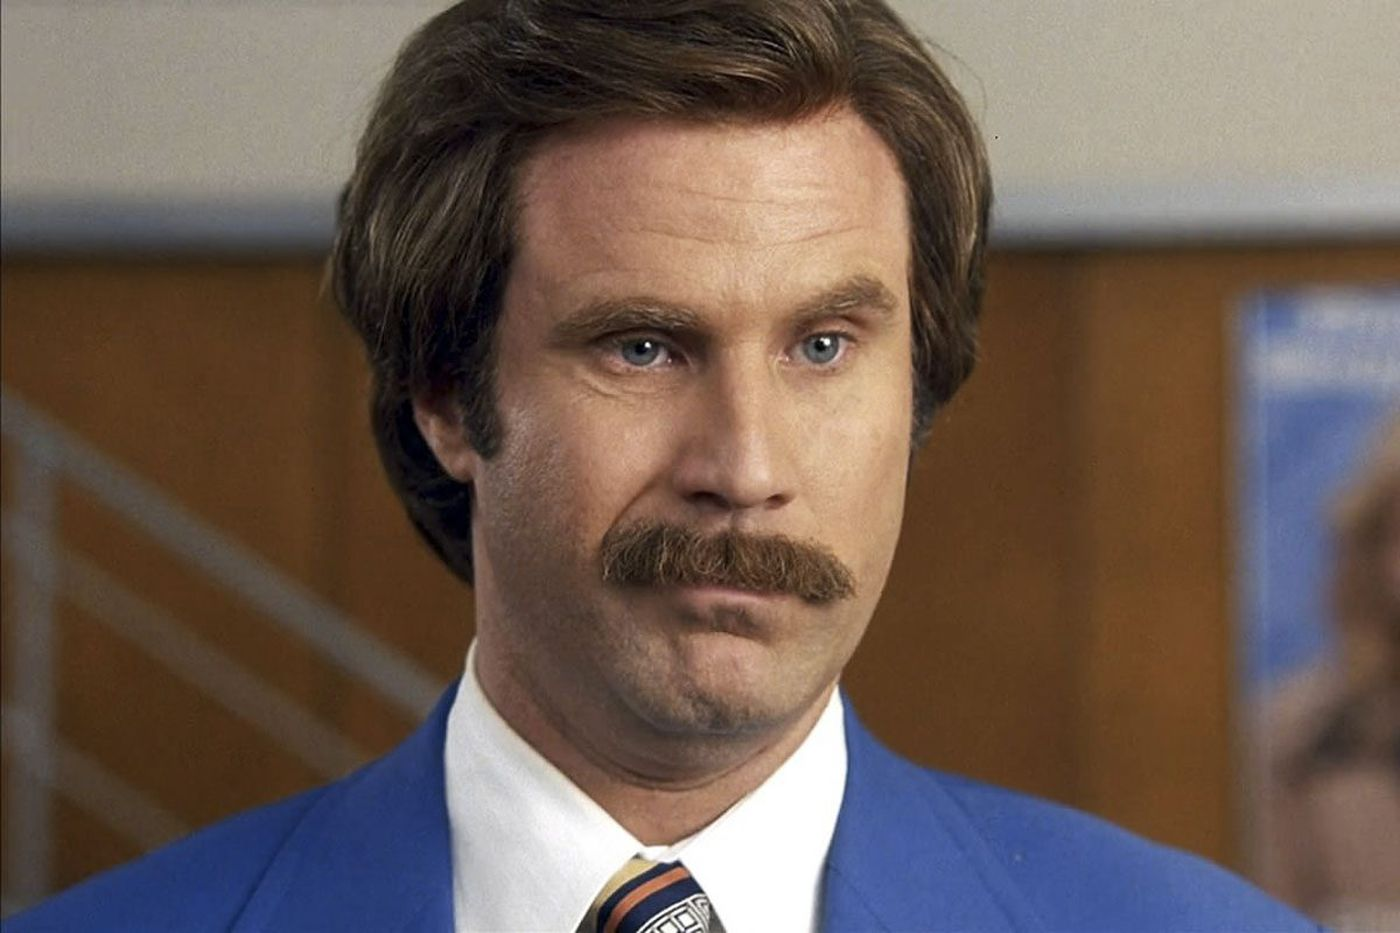 Original 'Anchorman' plot had Ron Burgundy and co. crash on flight to Philly